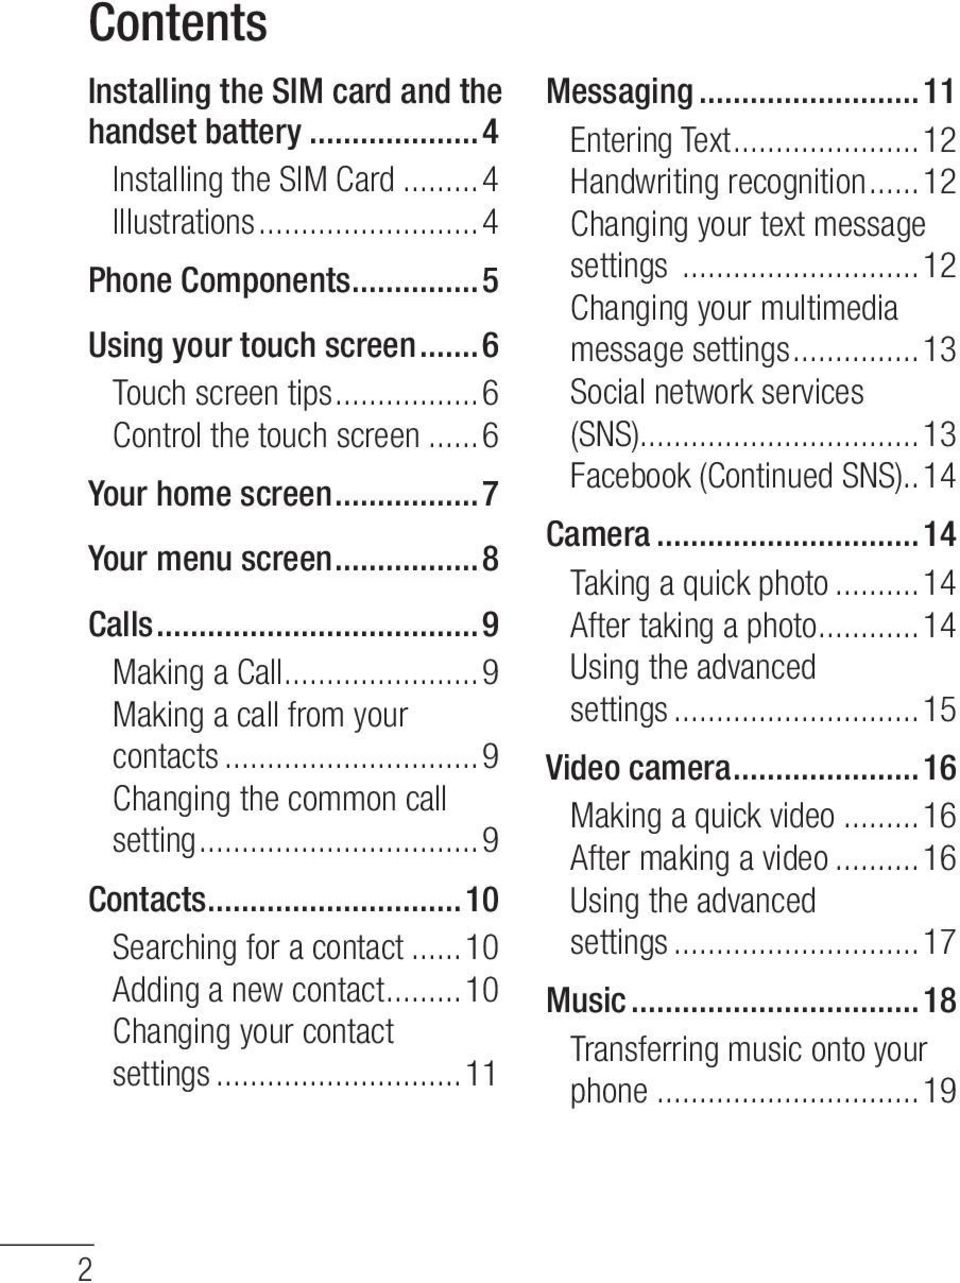 ..10 Searching for a contact...10 Adding a new contact...10 Changing your contact settings...11 Messaging...11 Entering Text...12 Handwriting recognition...12 Changing your text message settings.